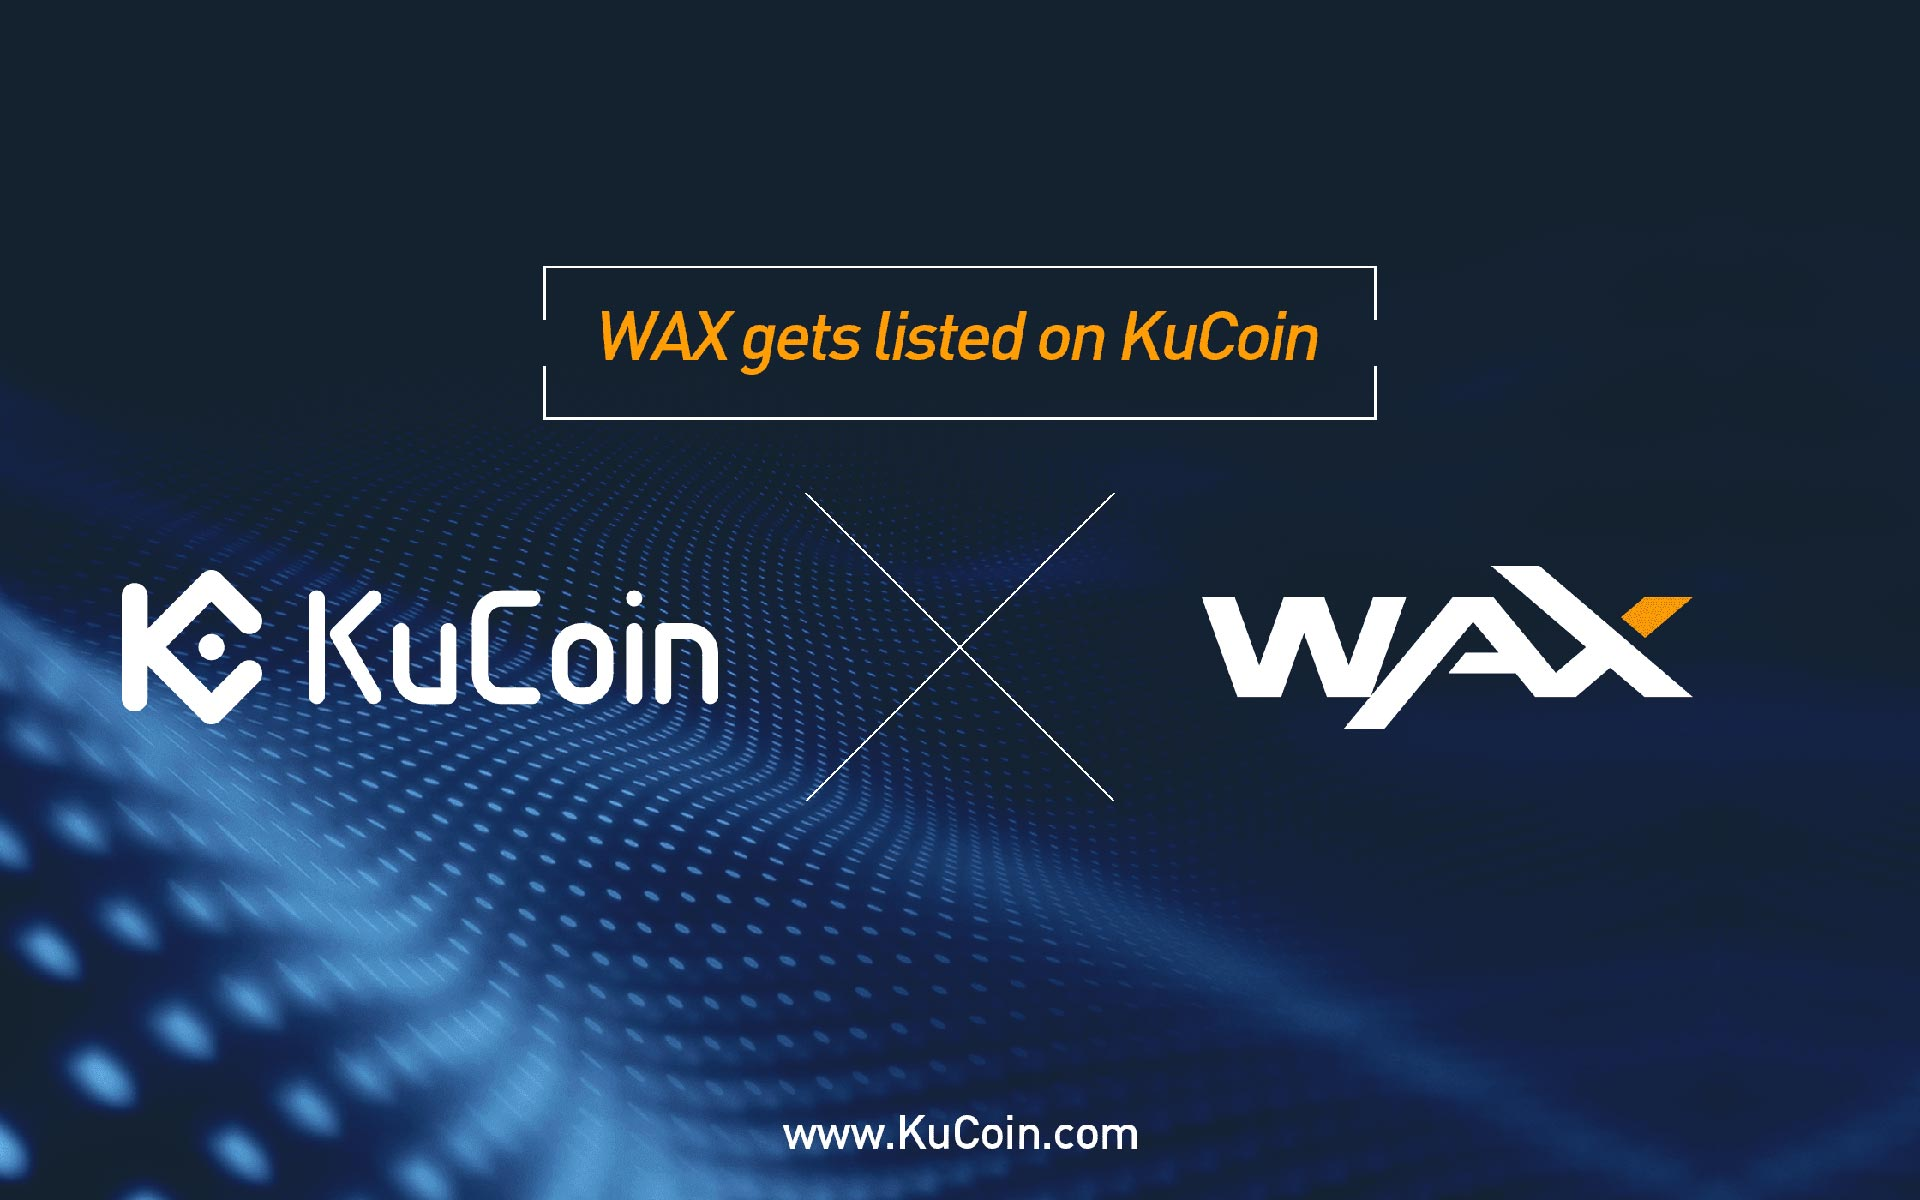 Wax(Wax) Gets Listed on Kucoin!